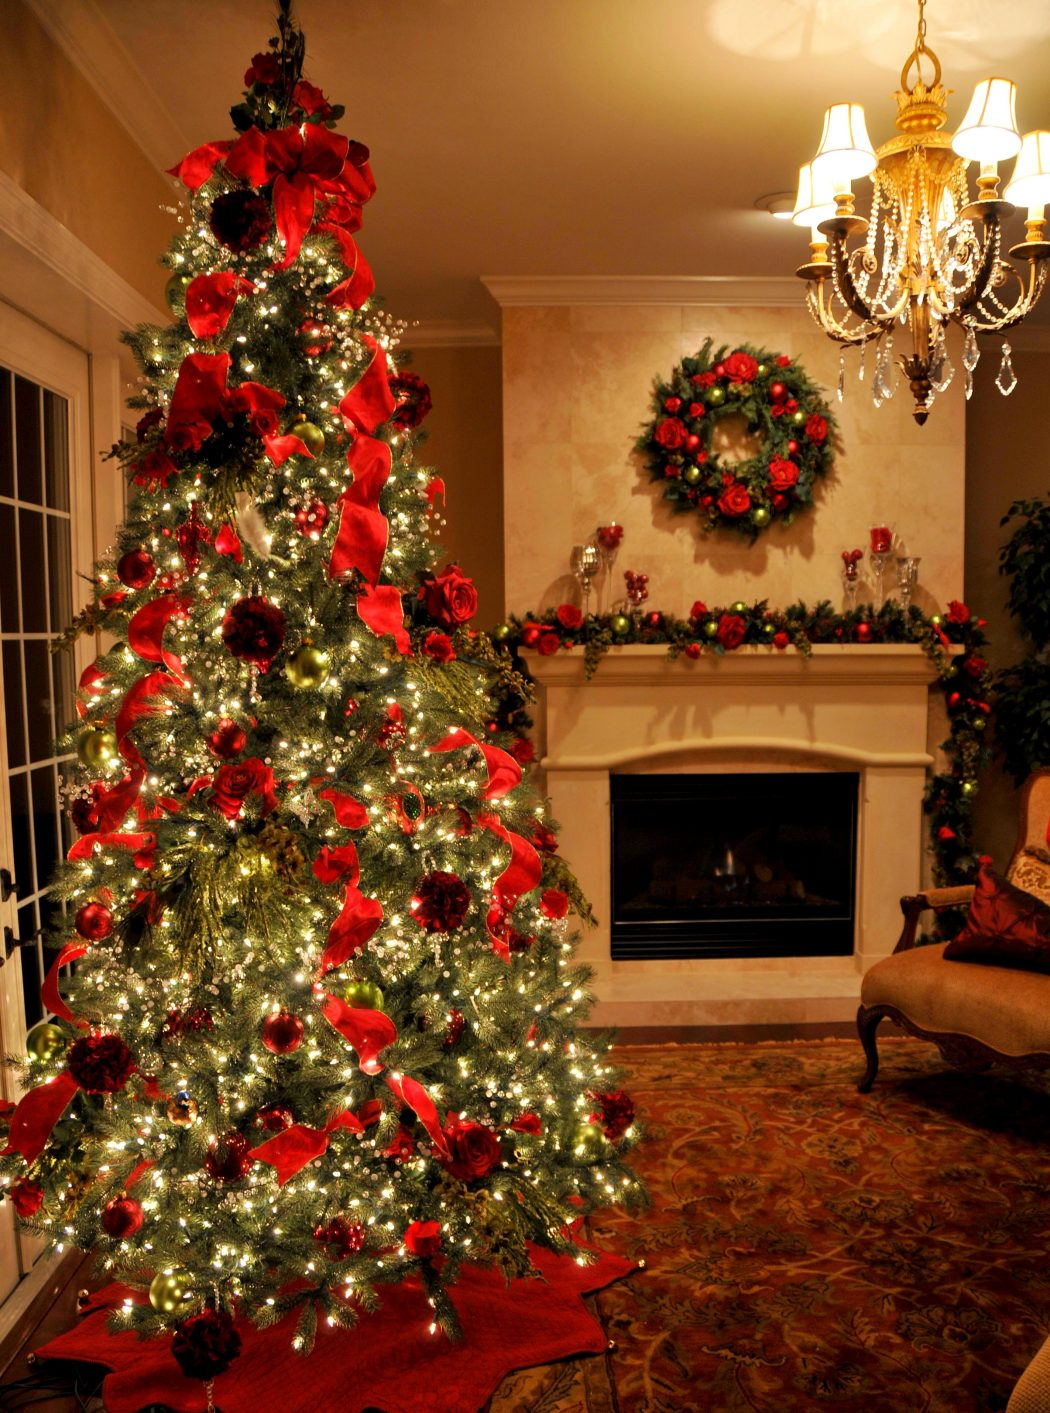 rose_tree-n-fireplace_l Prepare your Home Decorations For Next Holidays